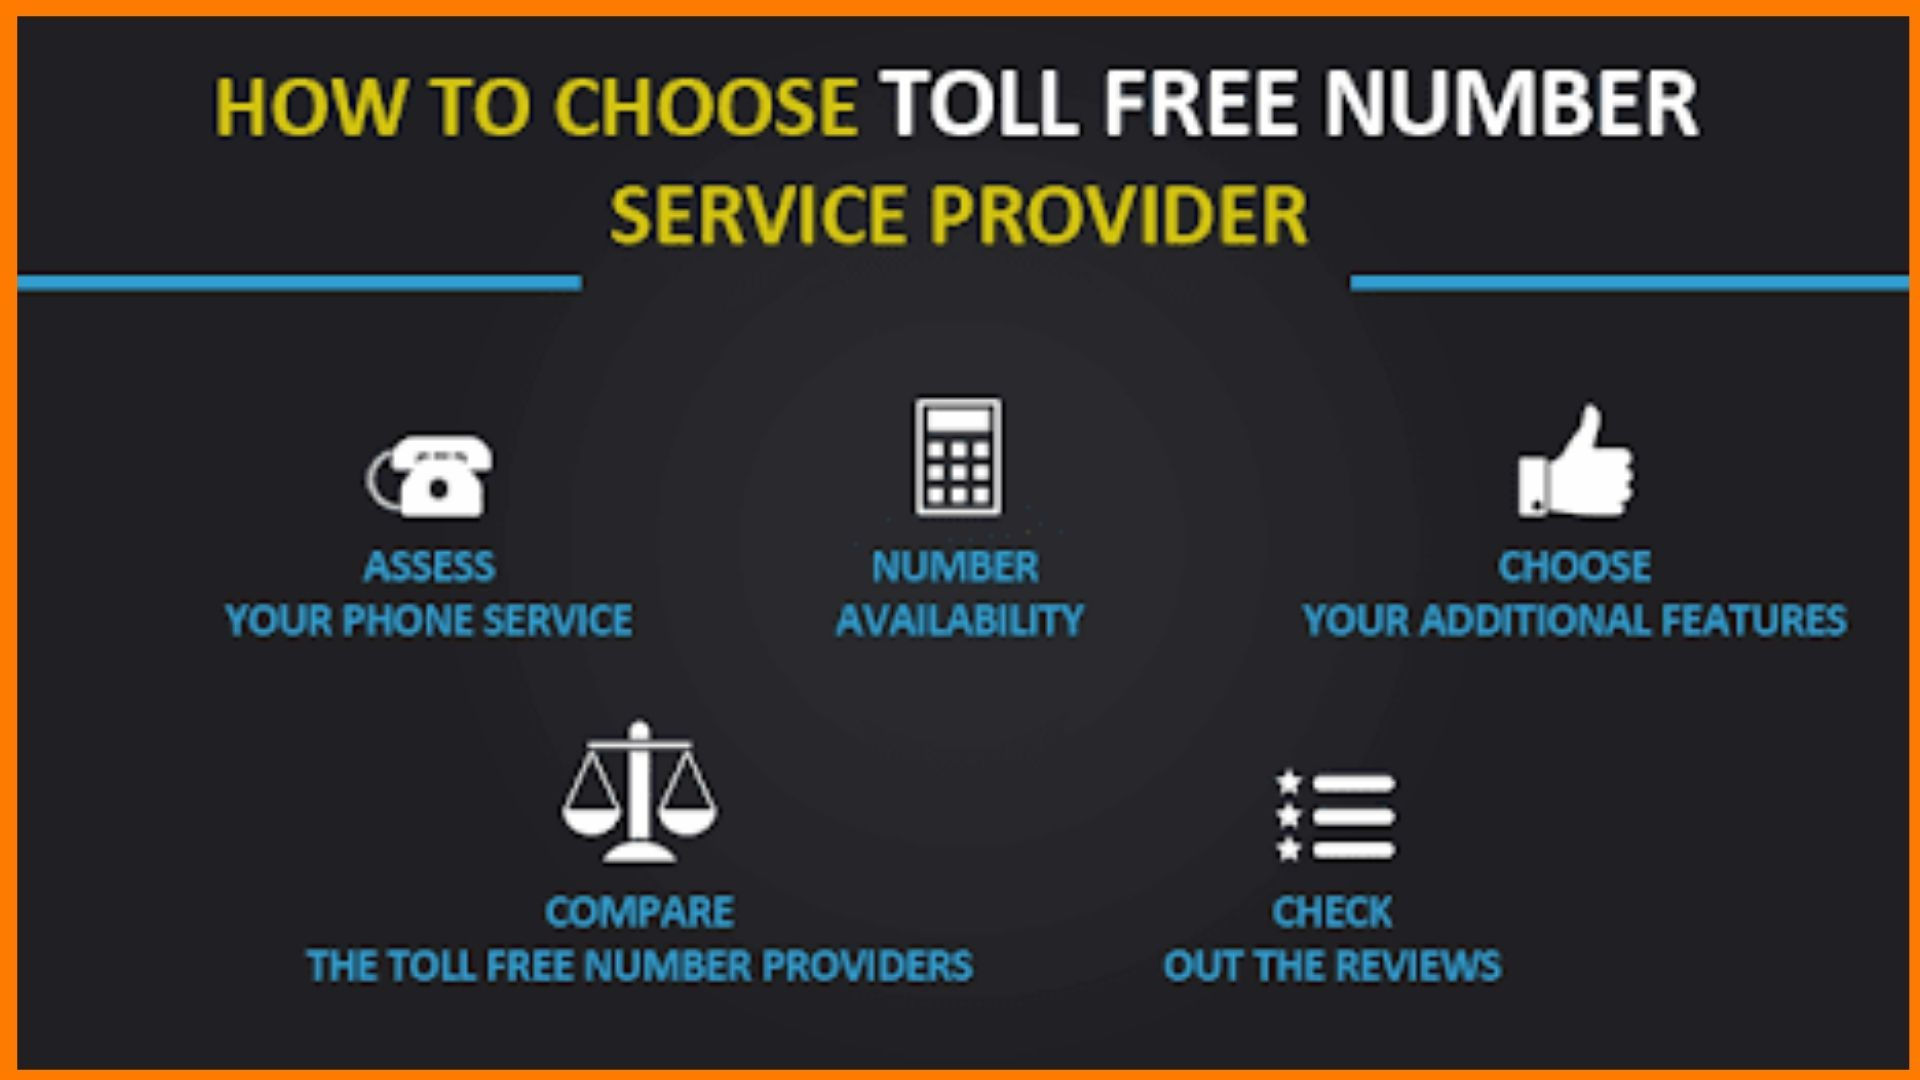 How to choose toll free number service provider?